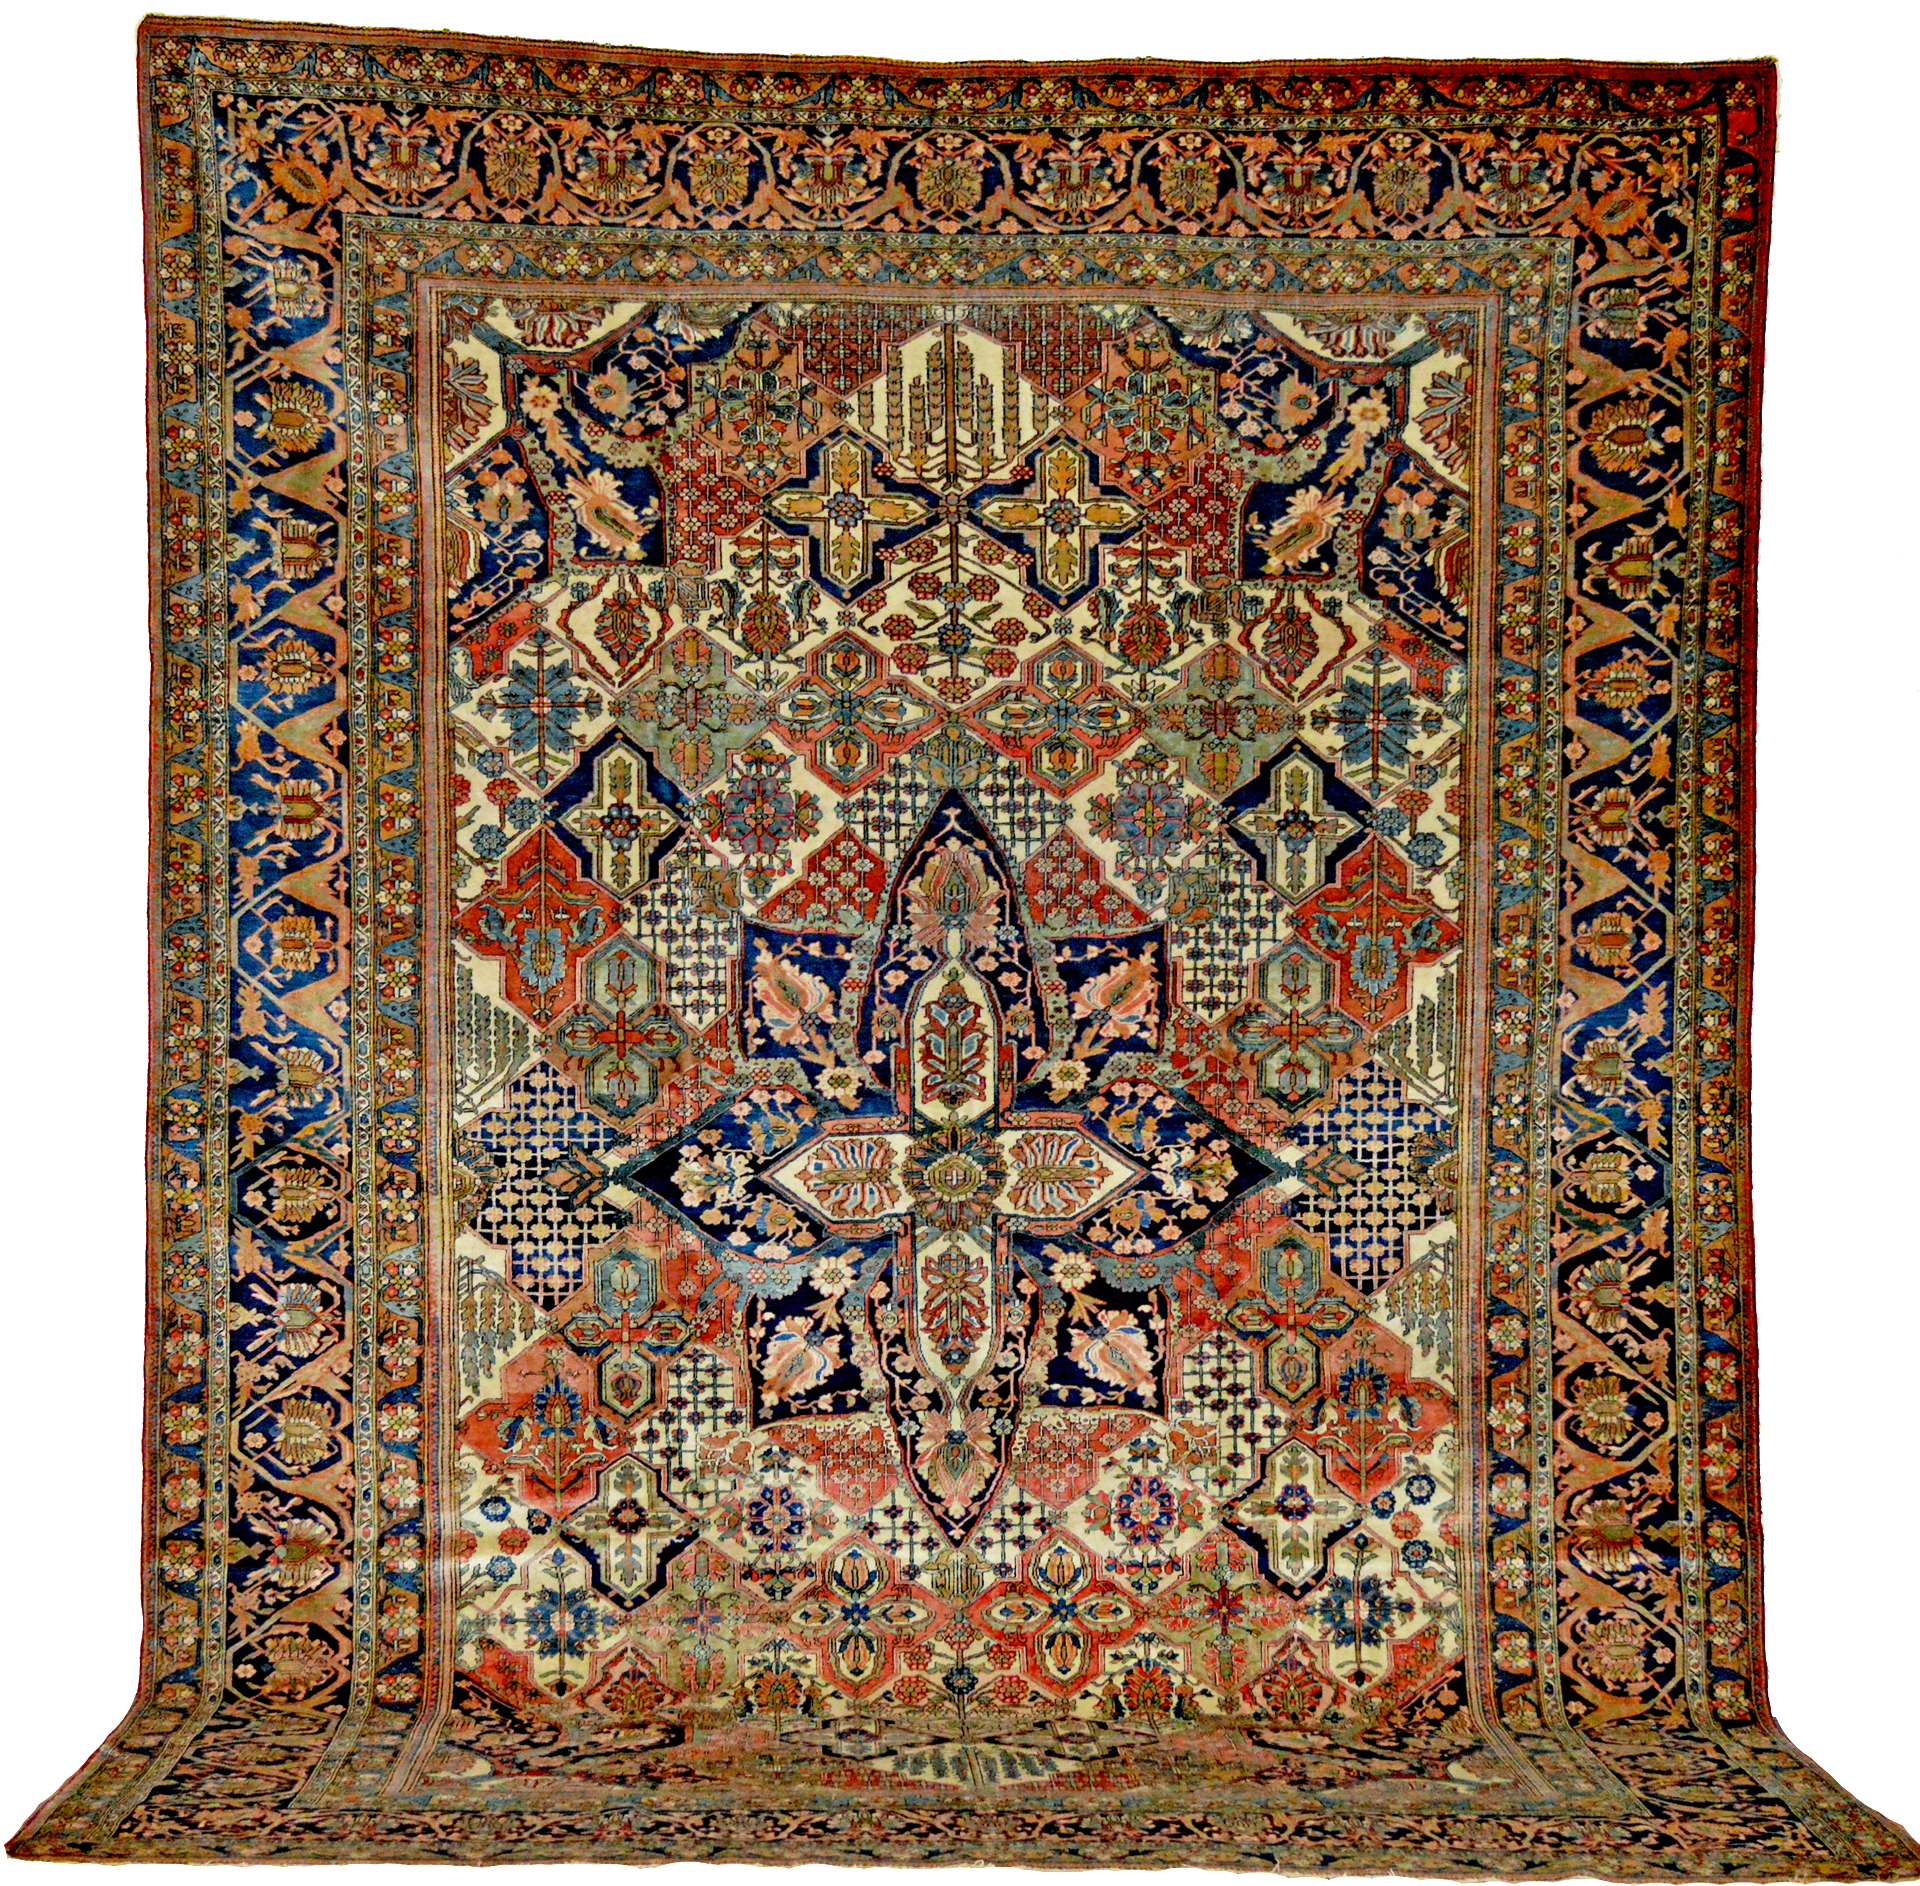 Antique Mohtashem Kashan carpet with Garden panel design